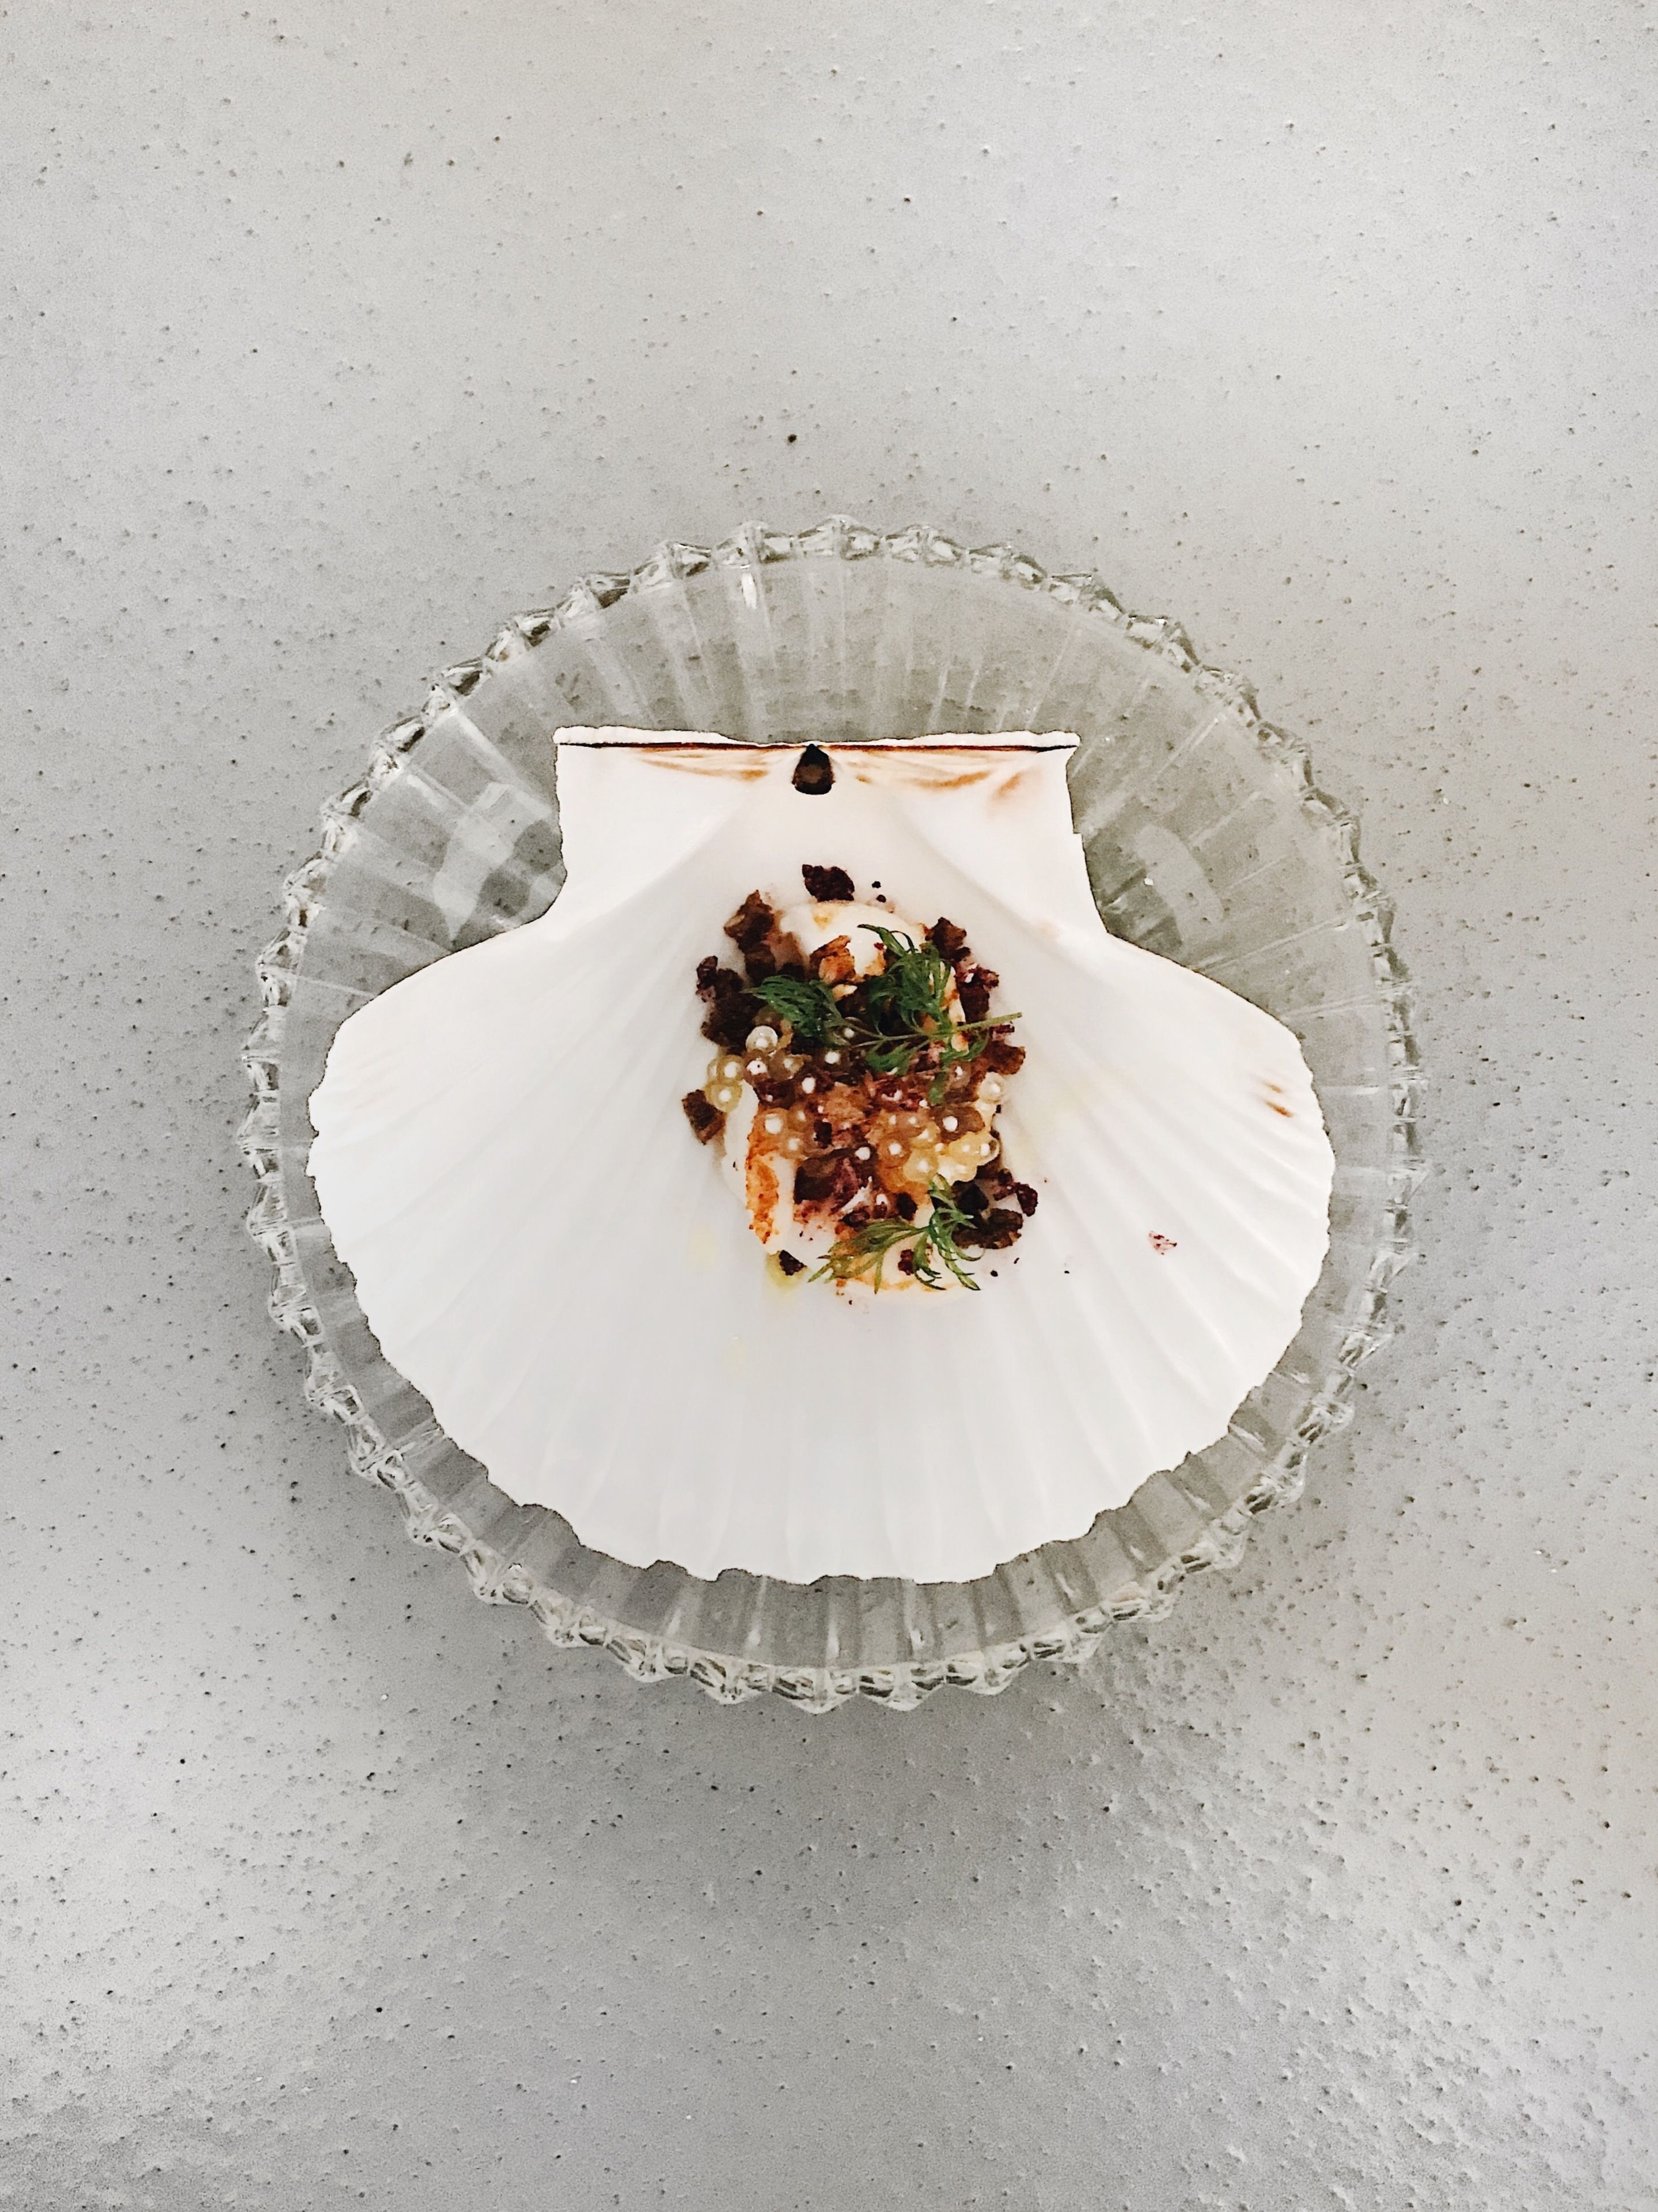 Caviar dish served on a clam shell